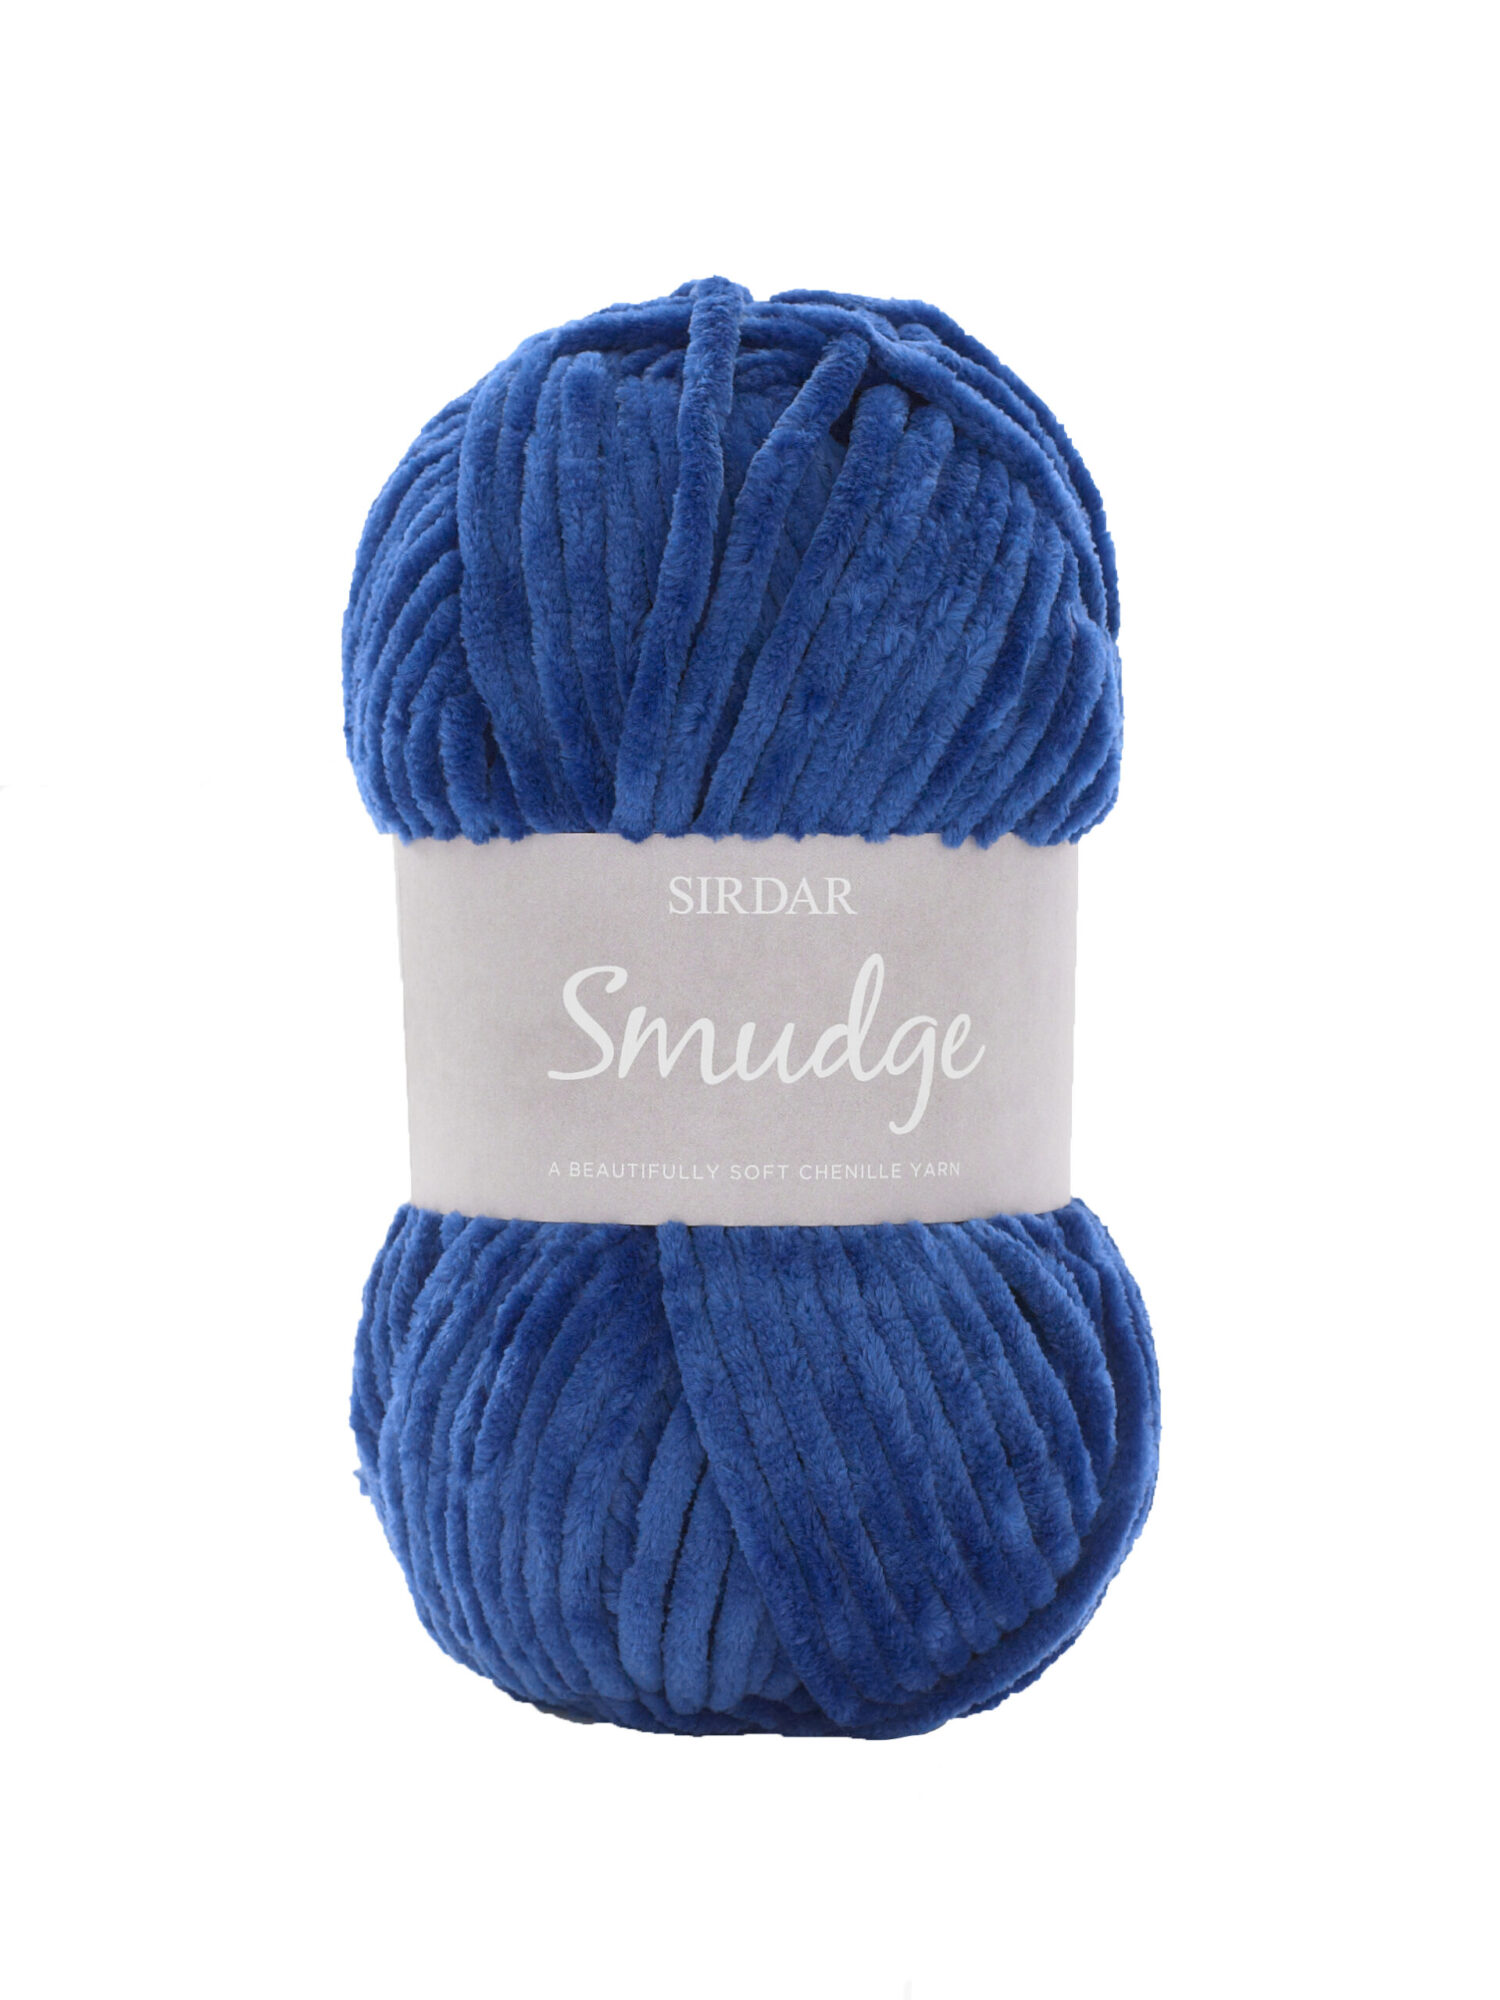 Sirdar Smudge product image